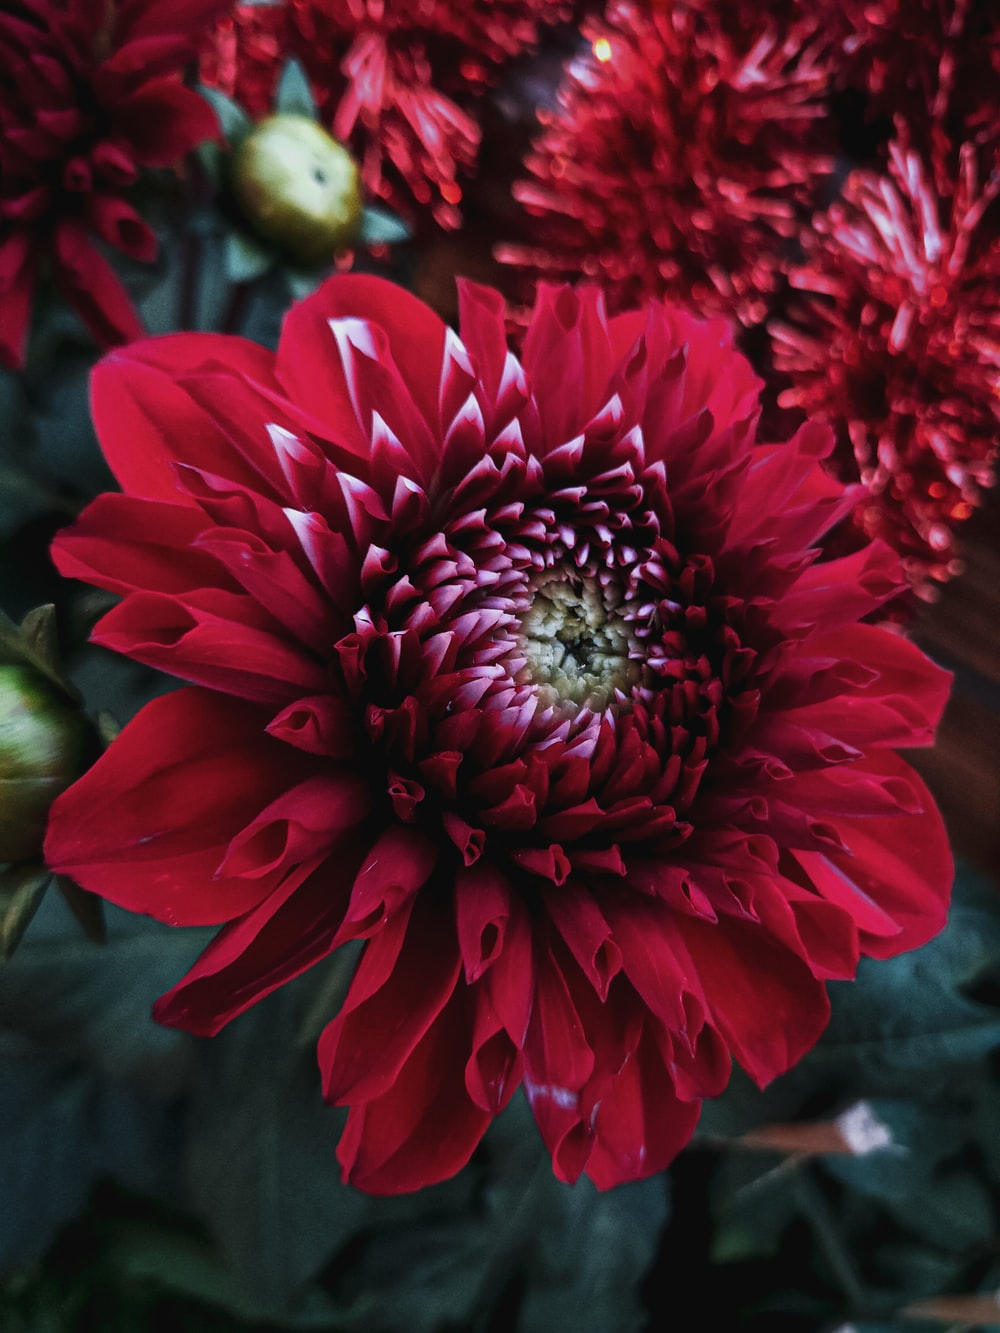 red dahlia in bloom during daytime